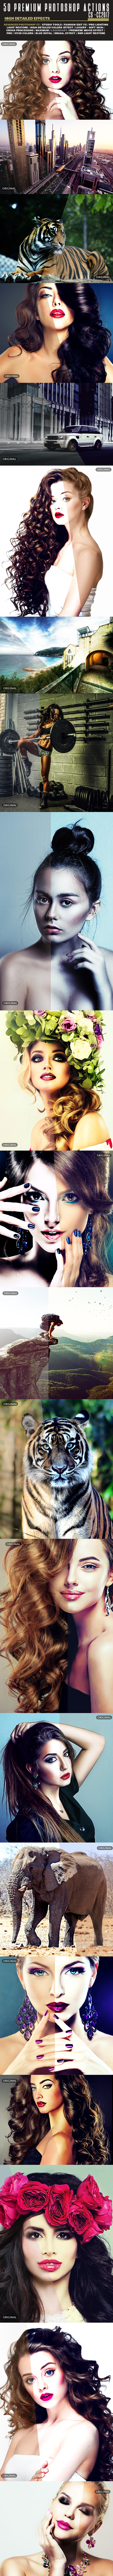 50 Premium Photoshop Actions - Photo Effects Actions